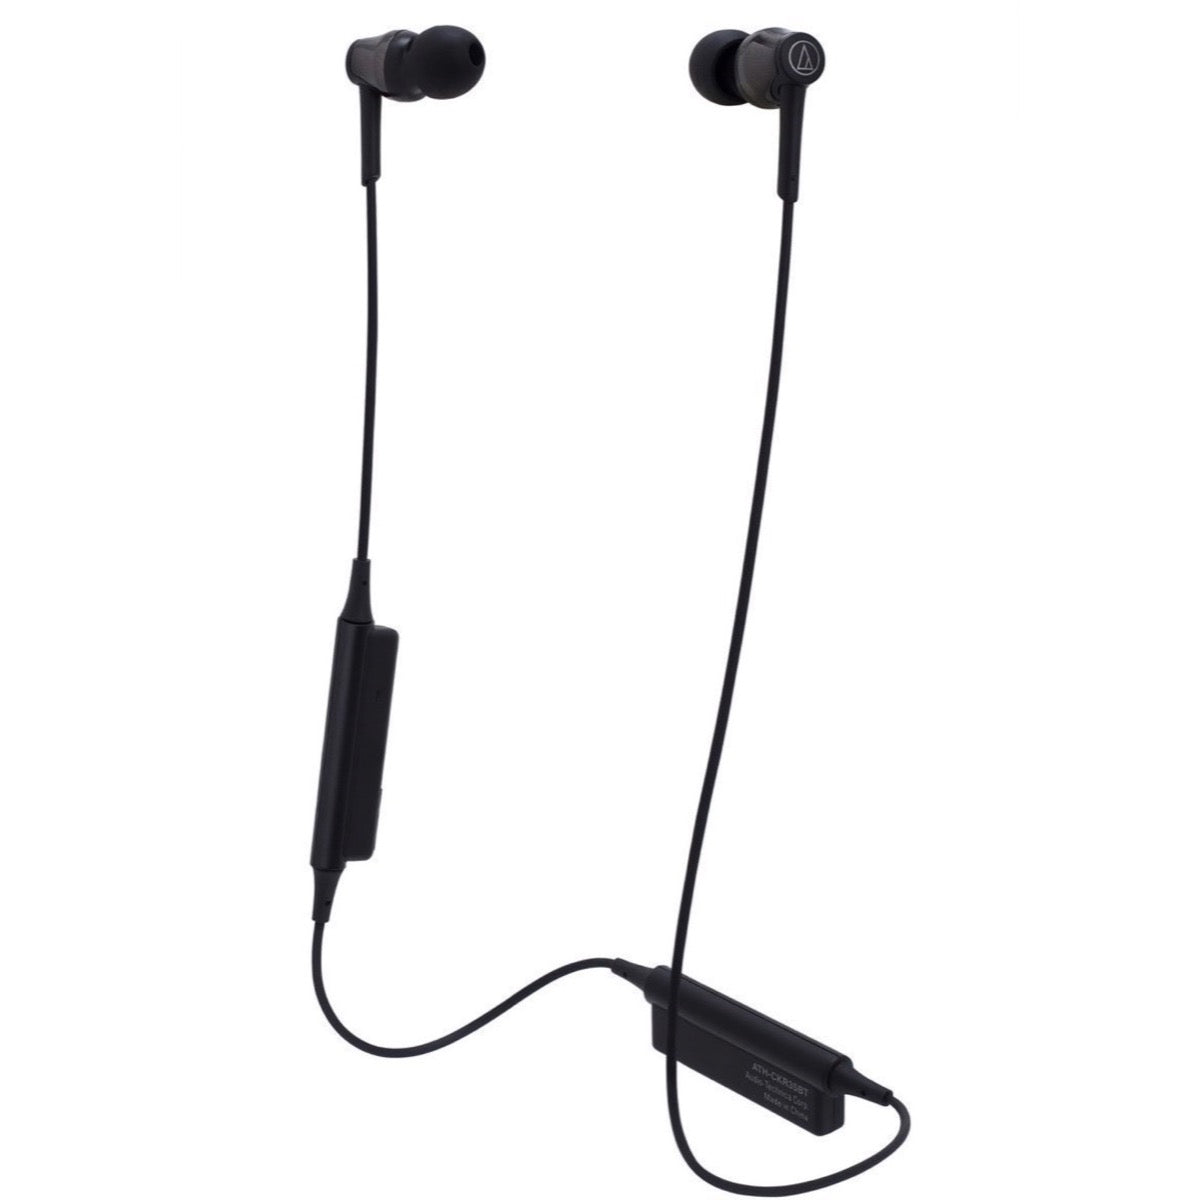 Audio-Technica ATH-CKR35BT Wireless In-Ear Headphones, Black